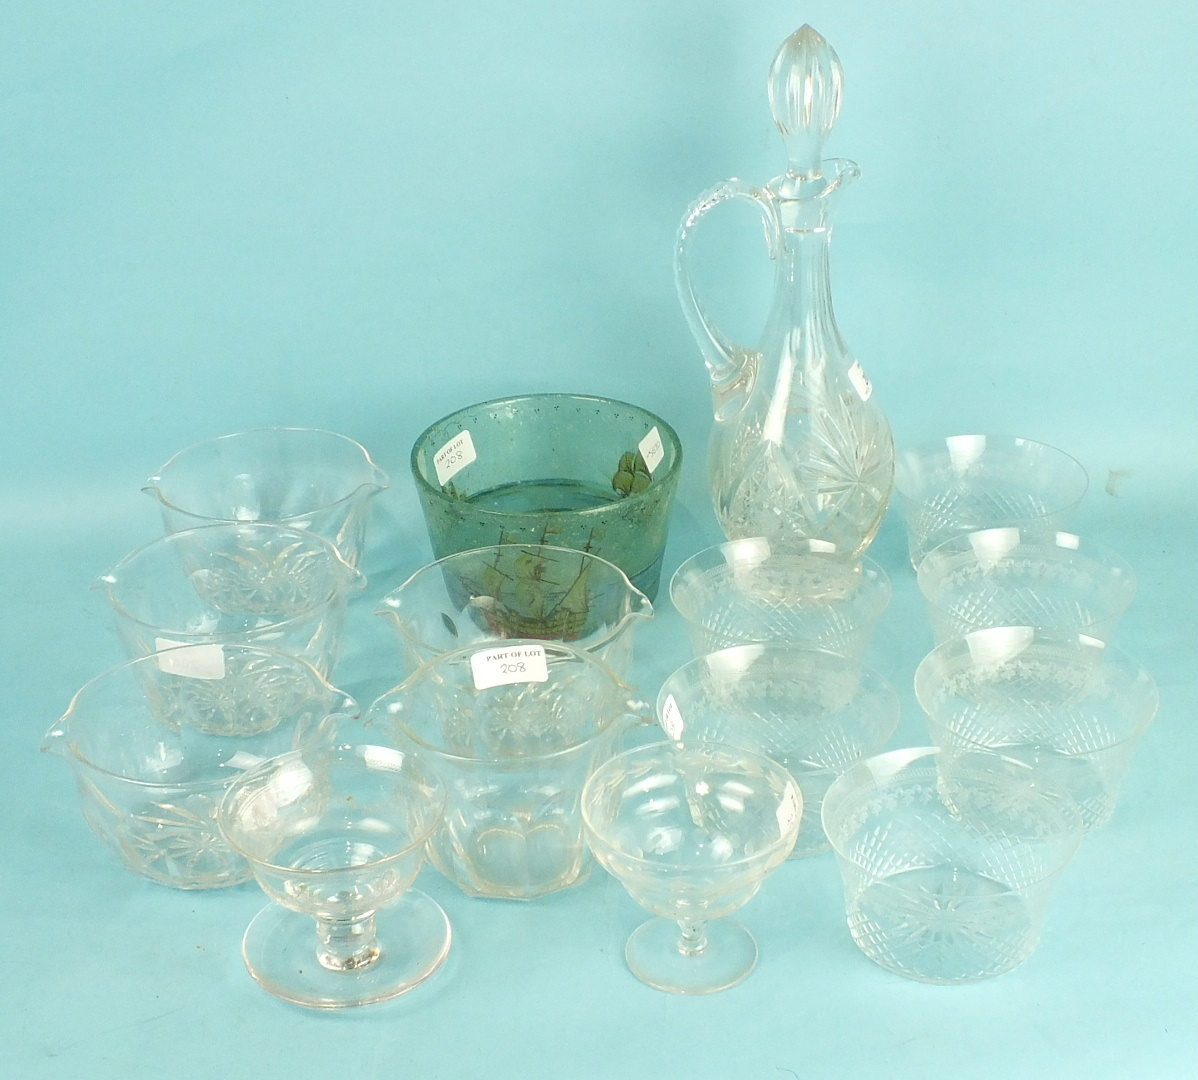 Lot 208 - Four cut-glass finger bowls, 16cm diameter, a cut-glass wine jug and stopper and other glassware.